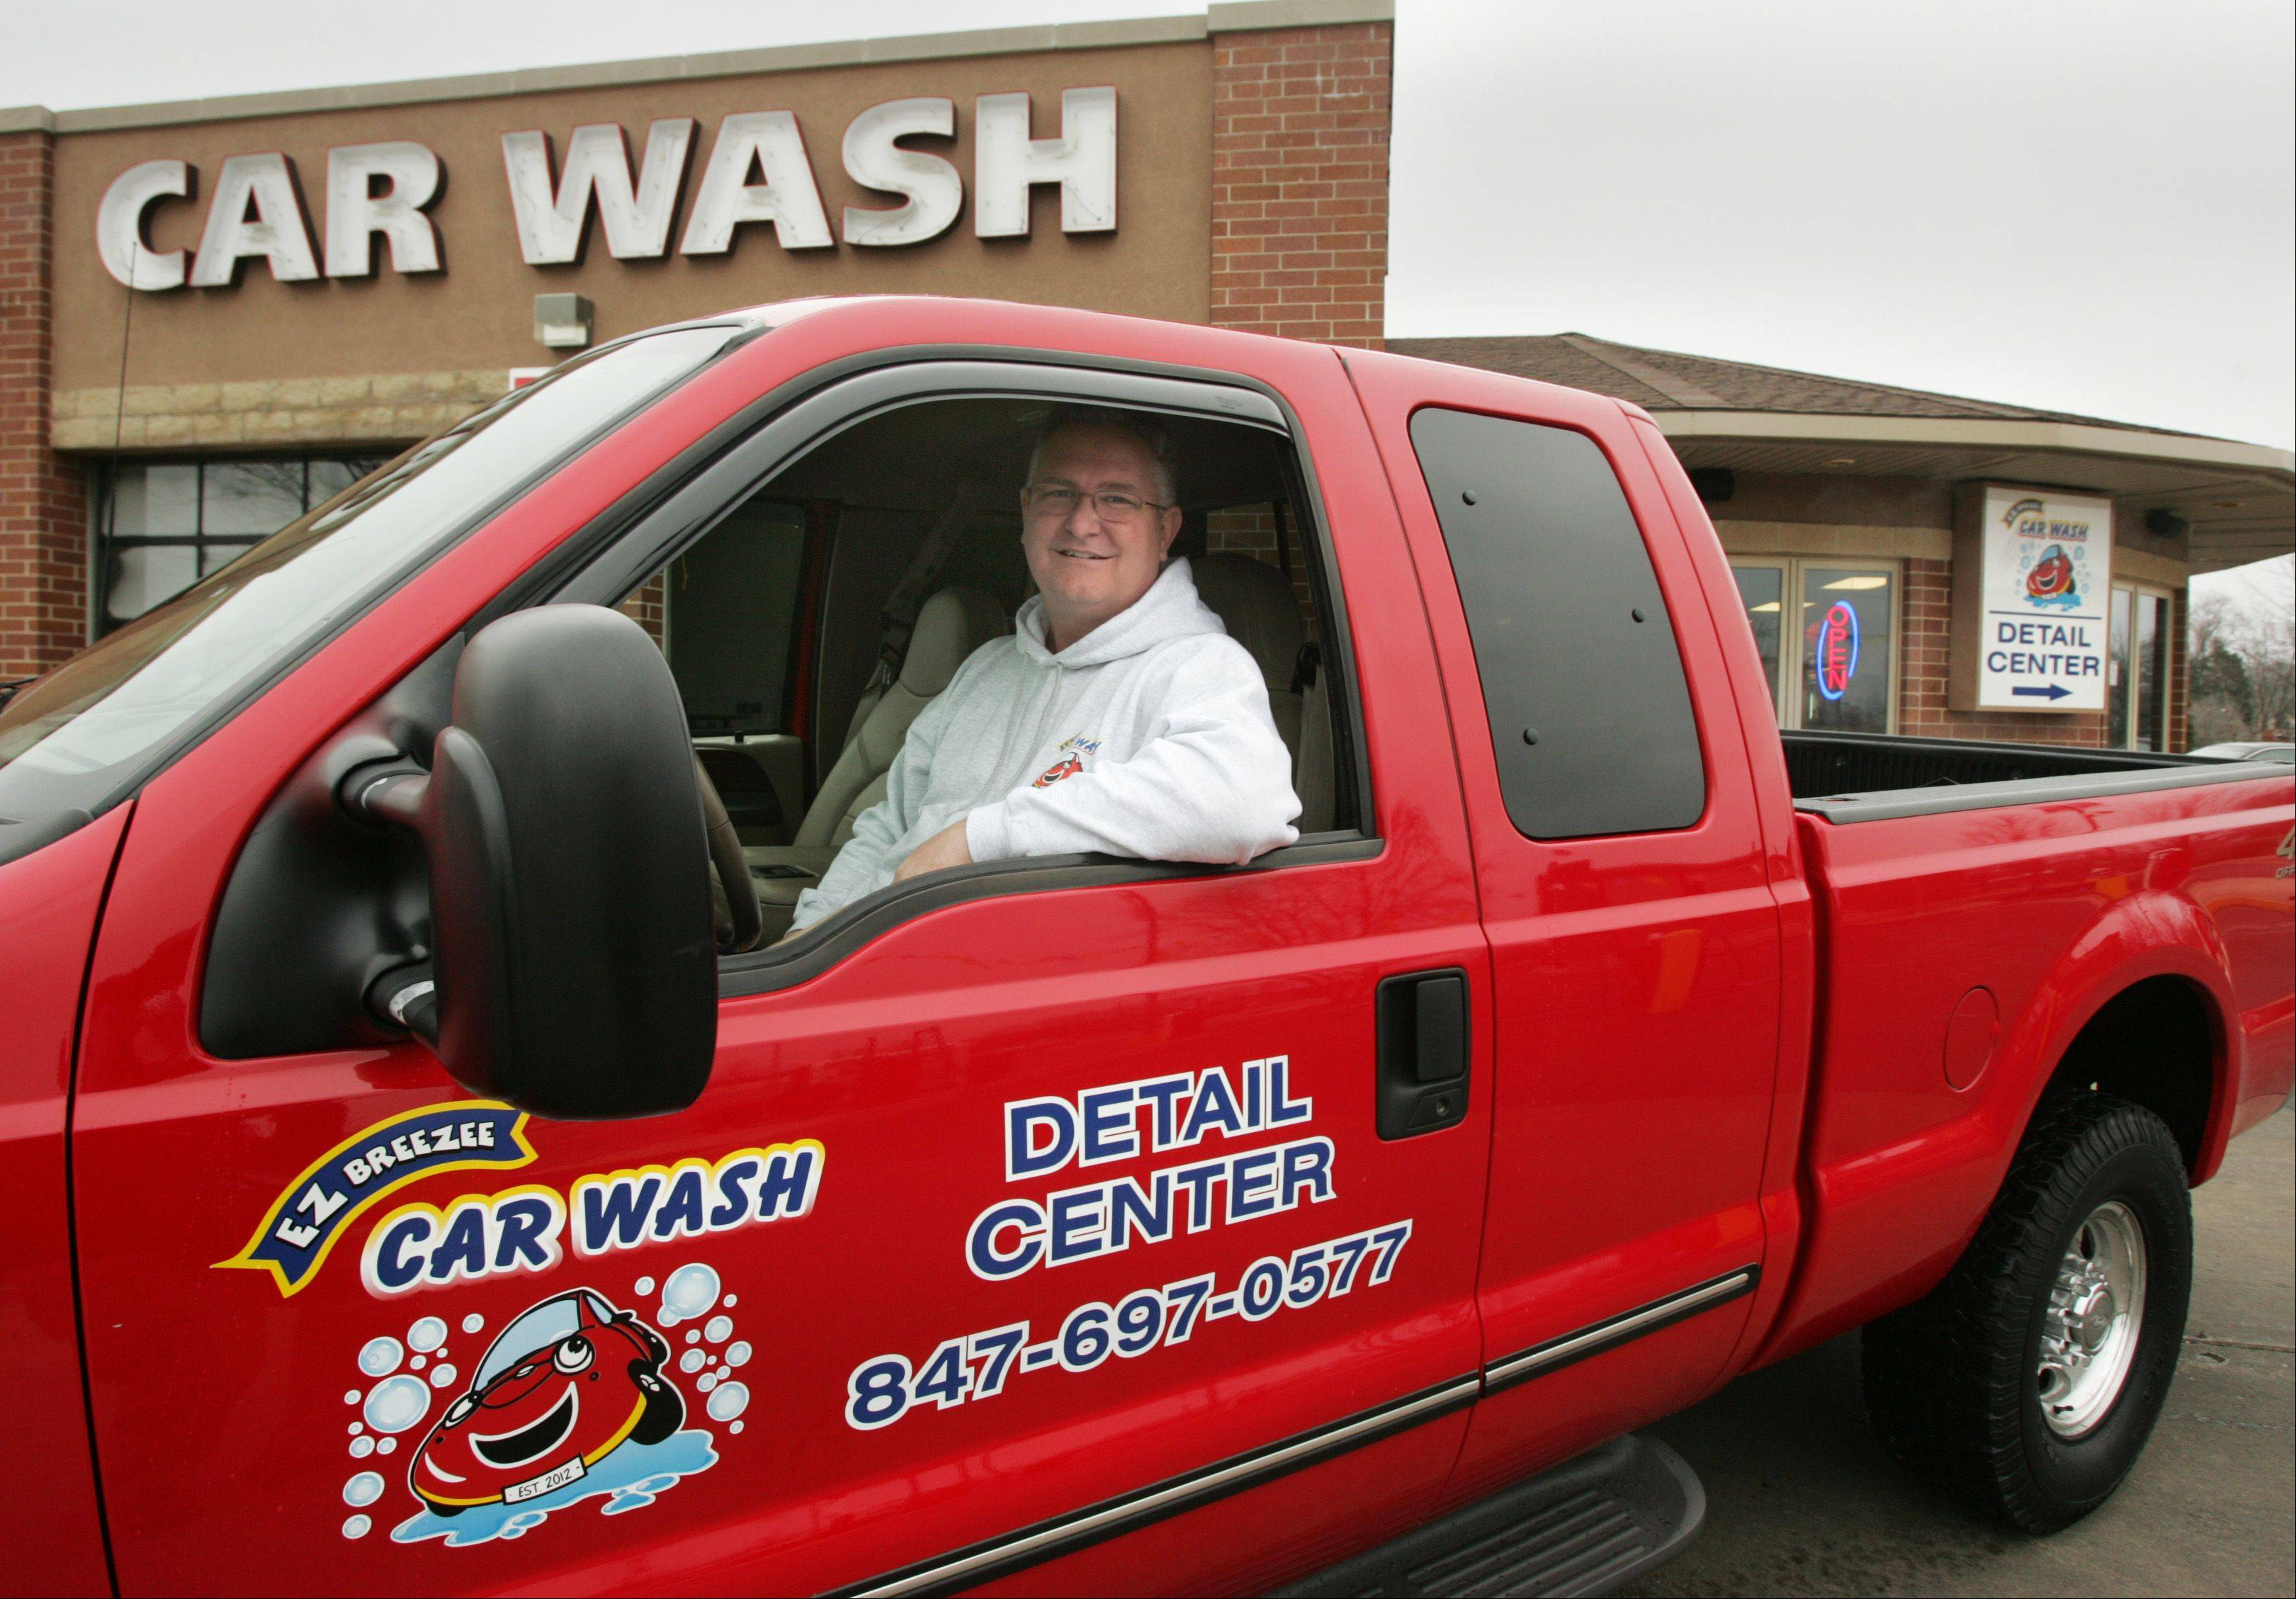 Brian Harrington owns EZ Breezee Car Wash in Elgin with his wife Donna. The Harringtons have made several improvements to the business since taking over earlier this year.